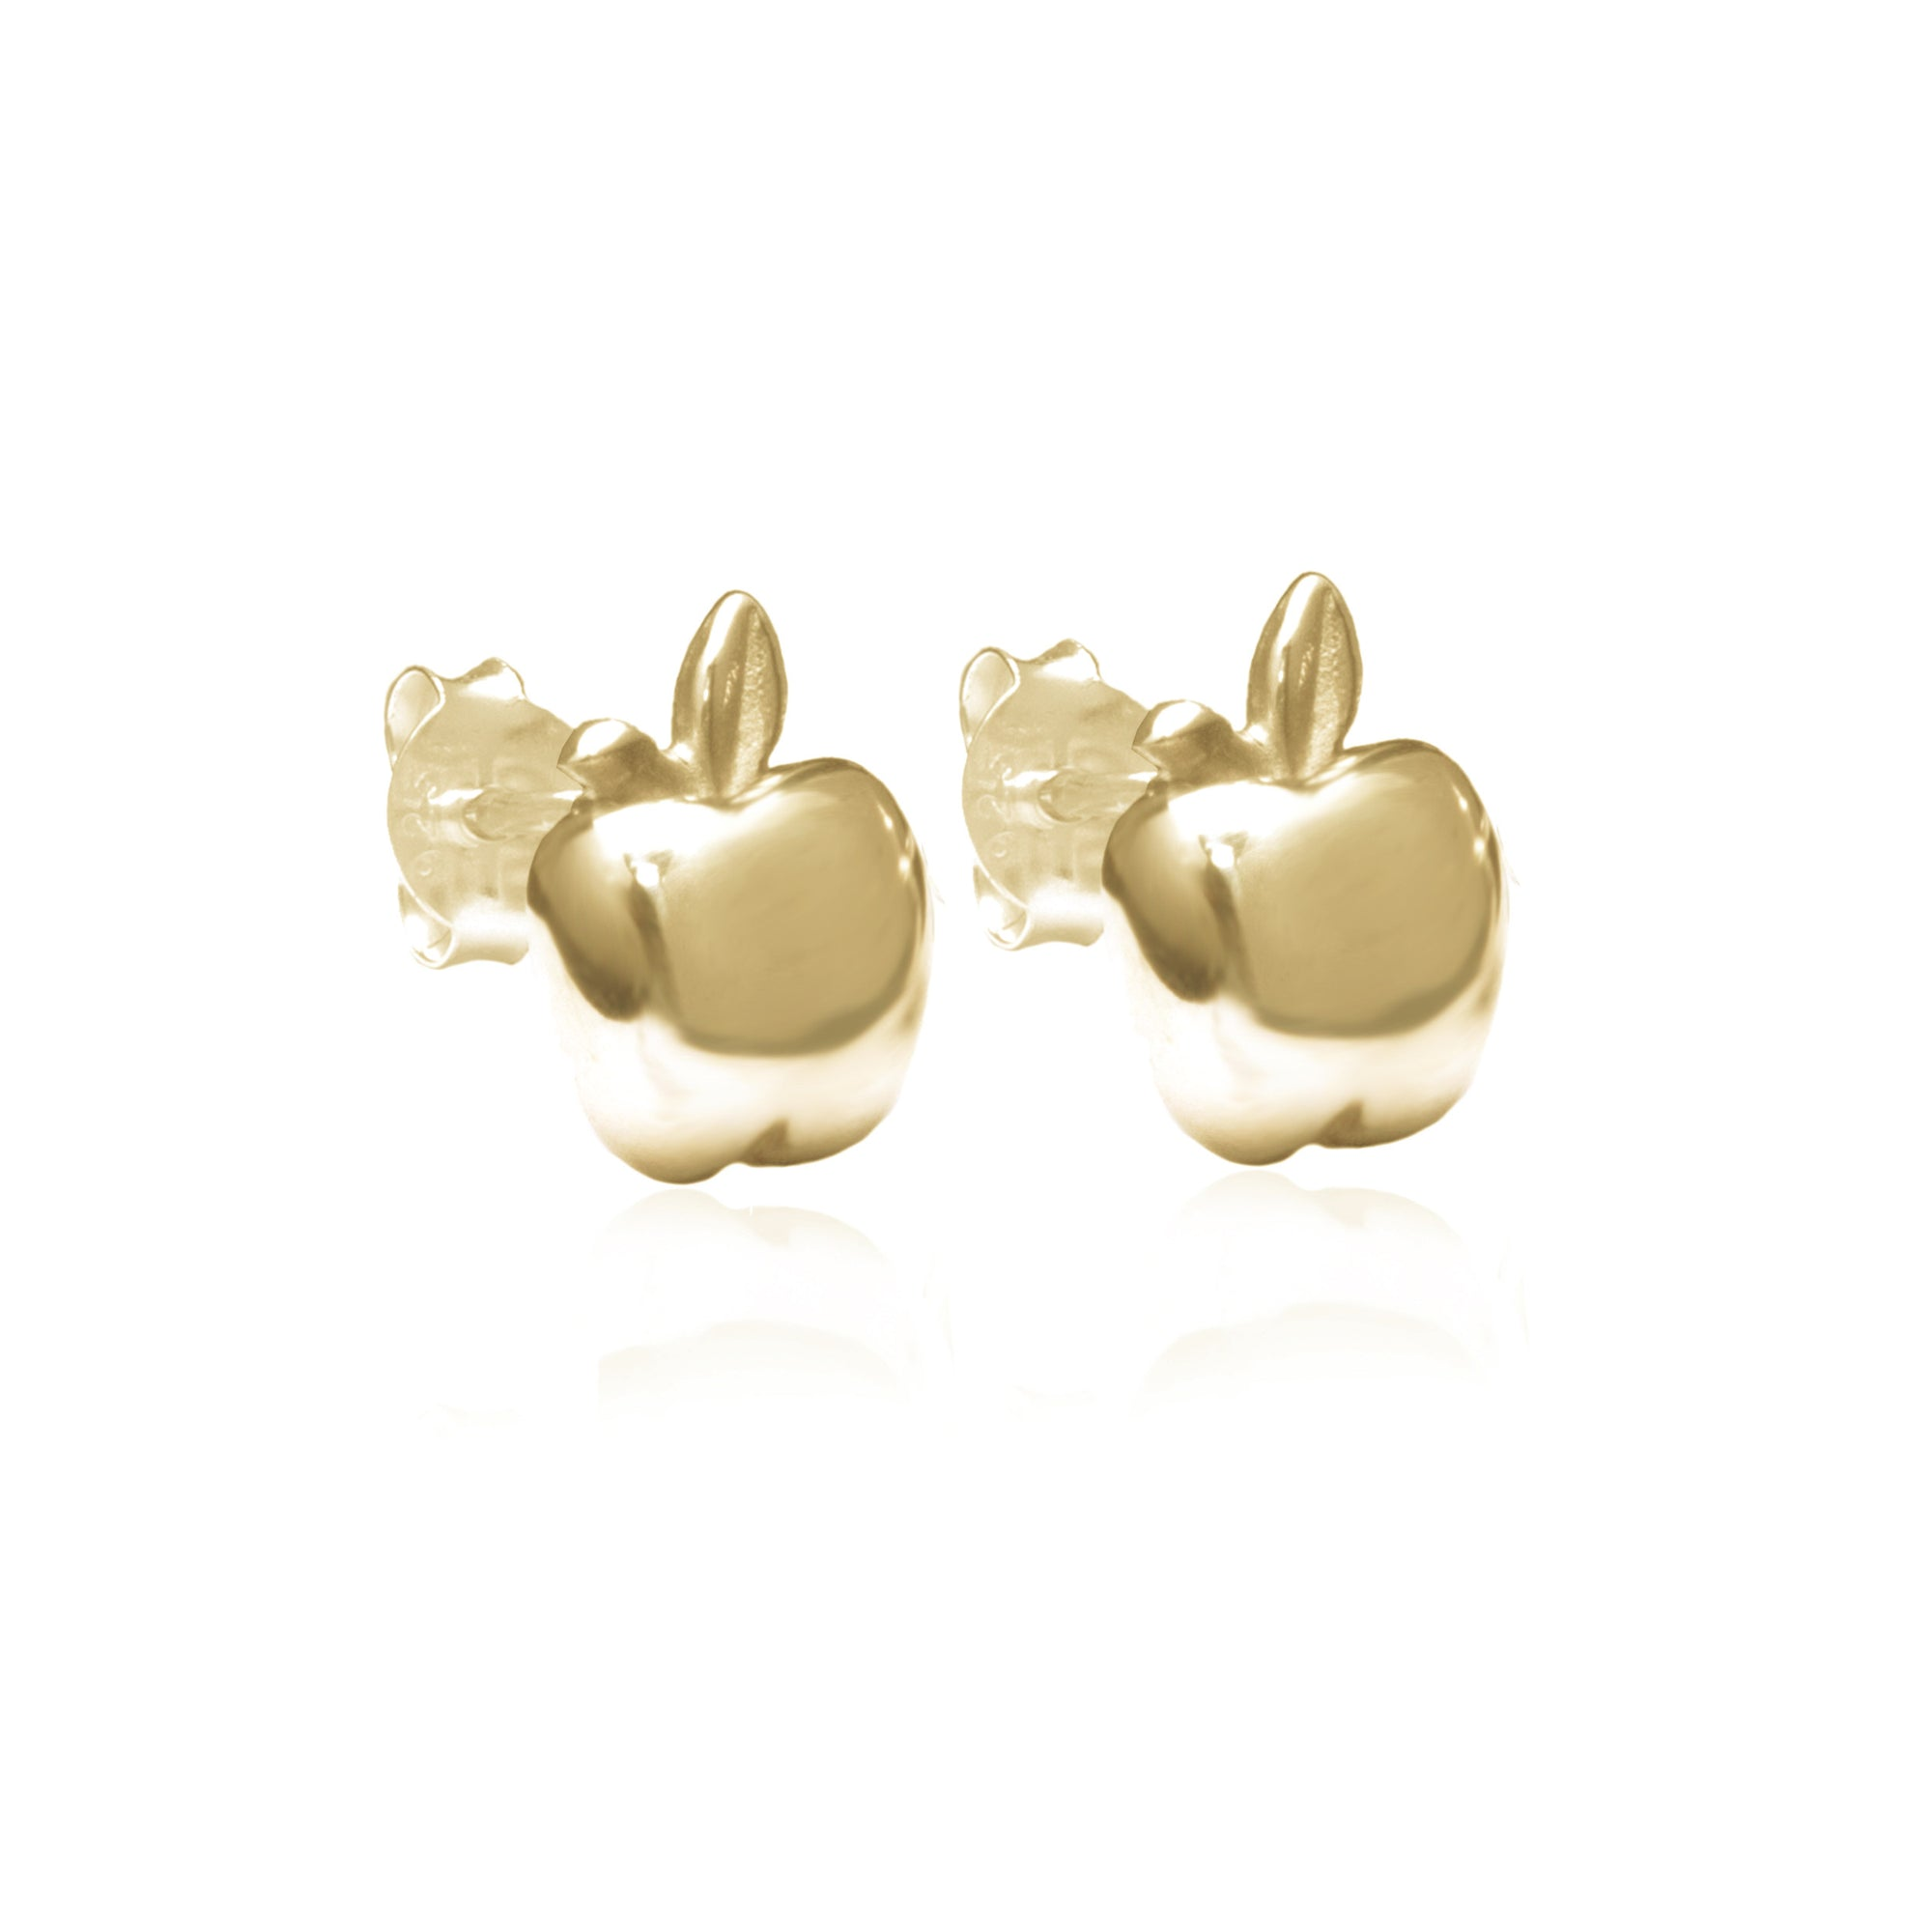 Luna & Rose - Apple of my Eye Earrings - Gold